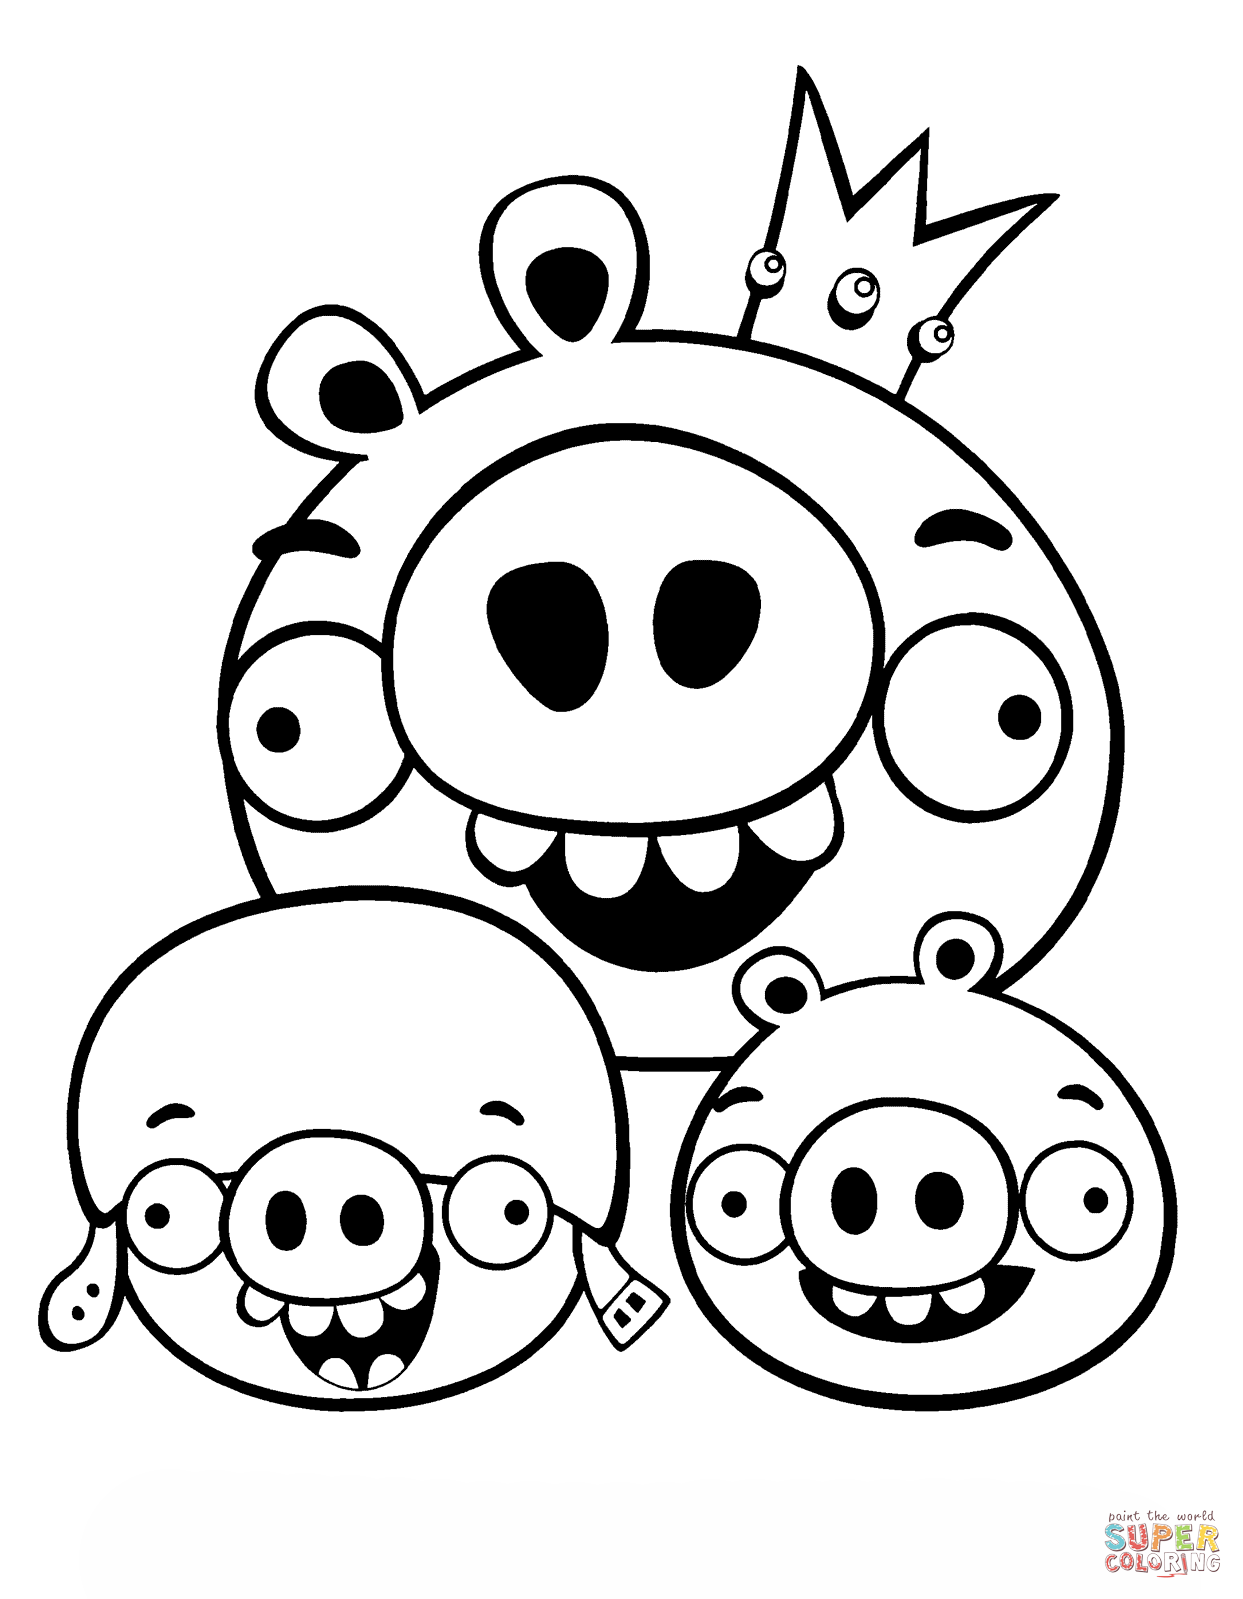 king pig coloring page 15 best printable angry birds colouring pages for kids king pig page coloring